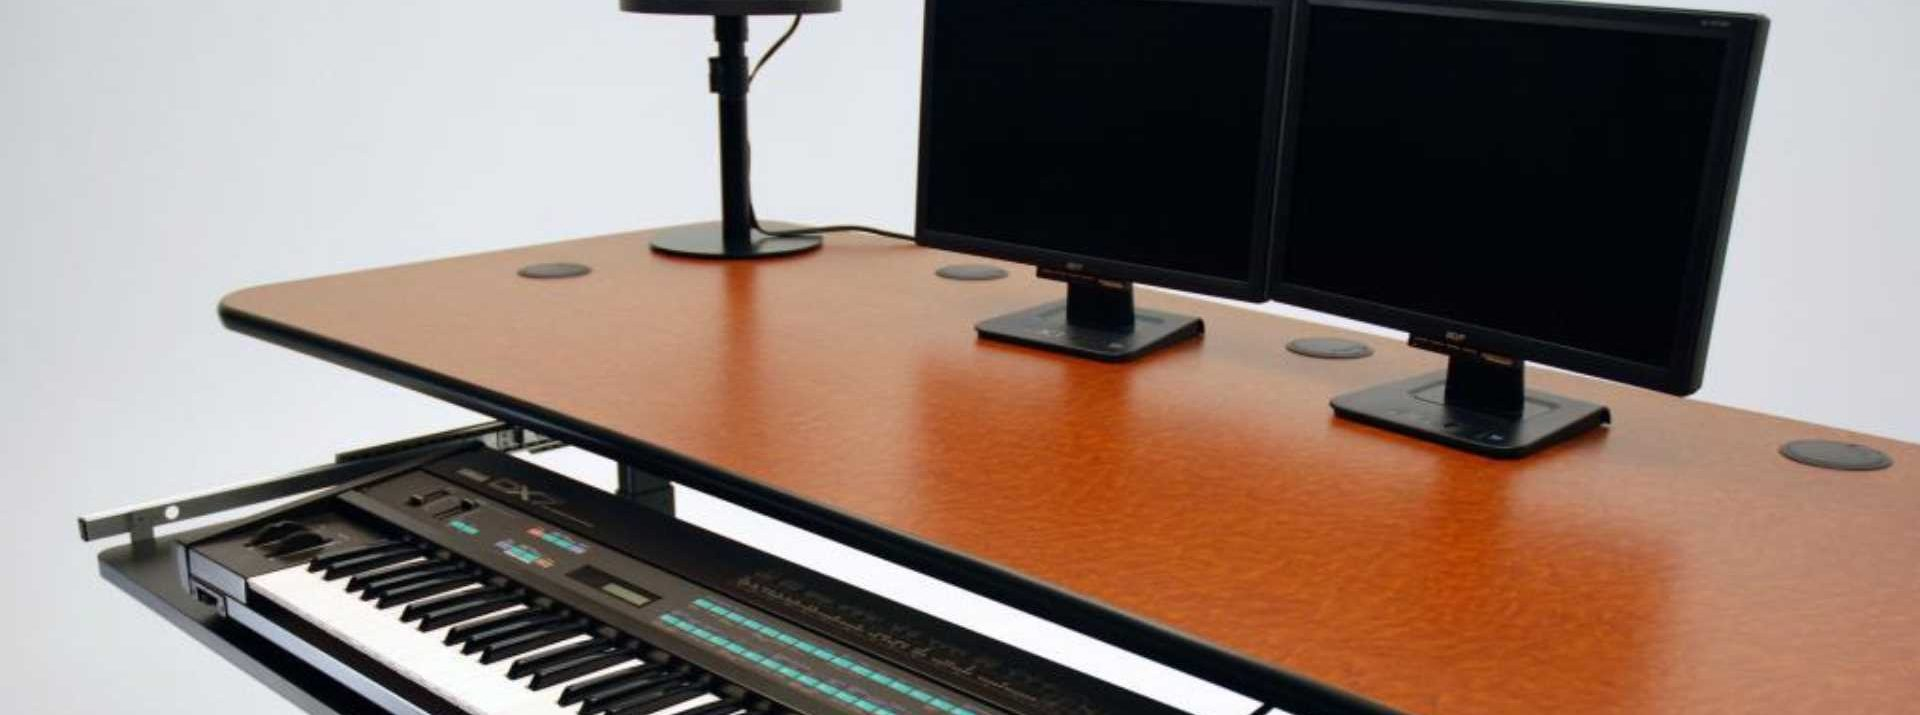 Get a Music Workstation